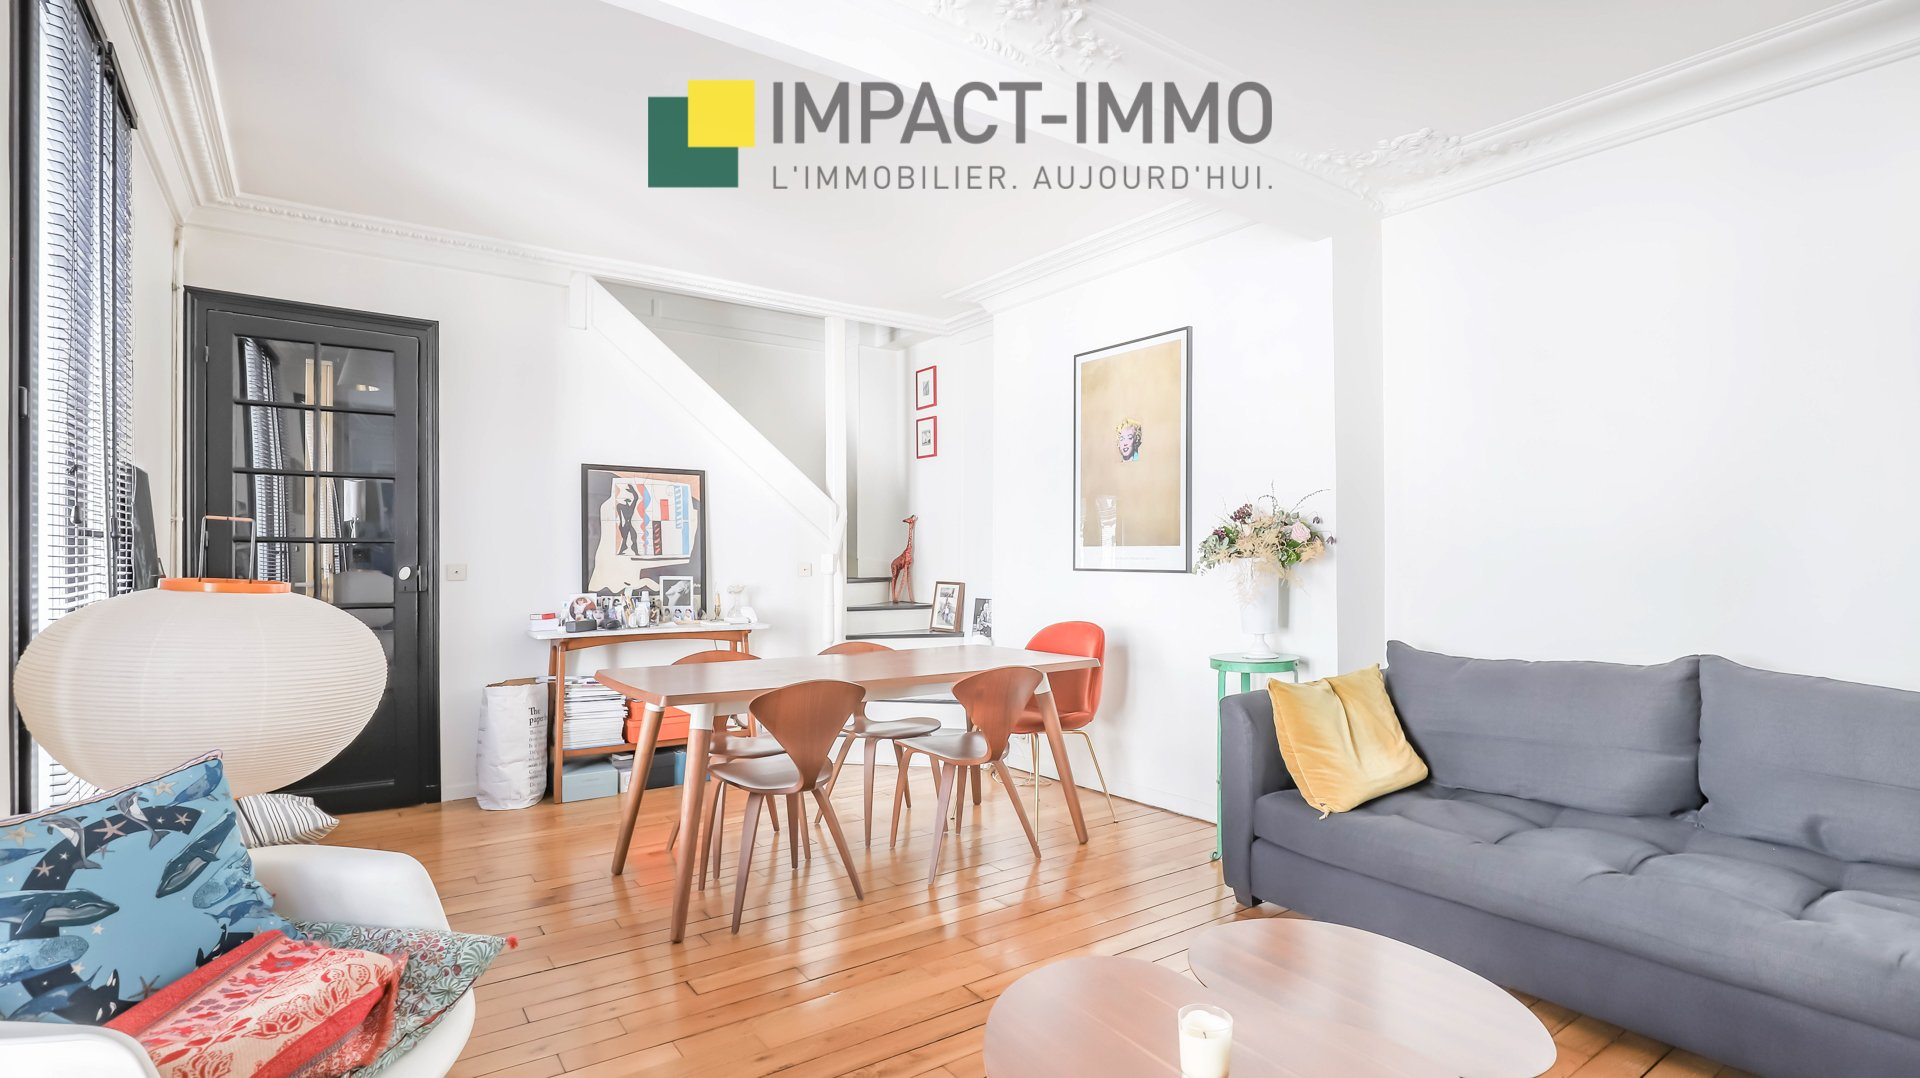 A VENDRE - DUPLEX - GRANDES CARRIERES - 75018 PARIS